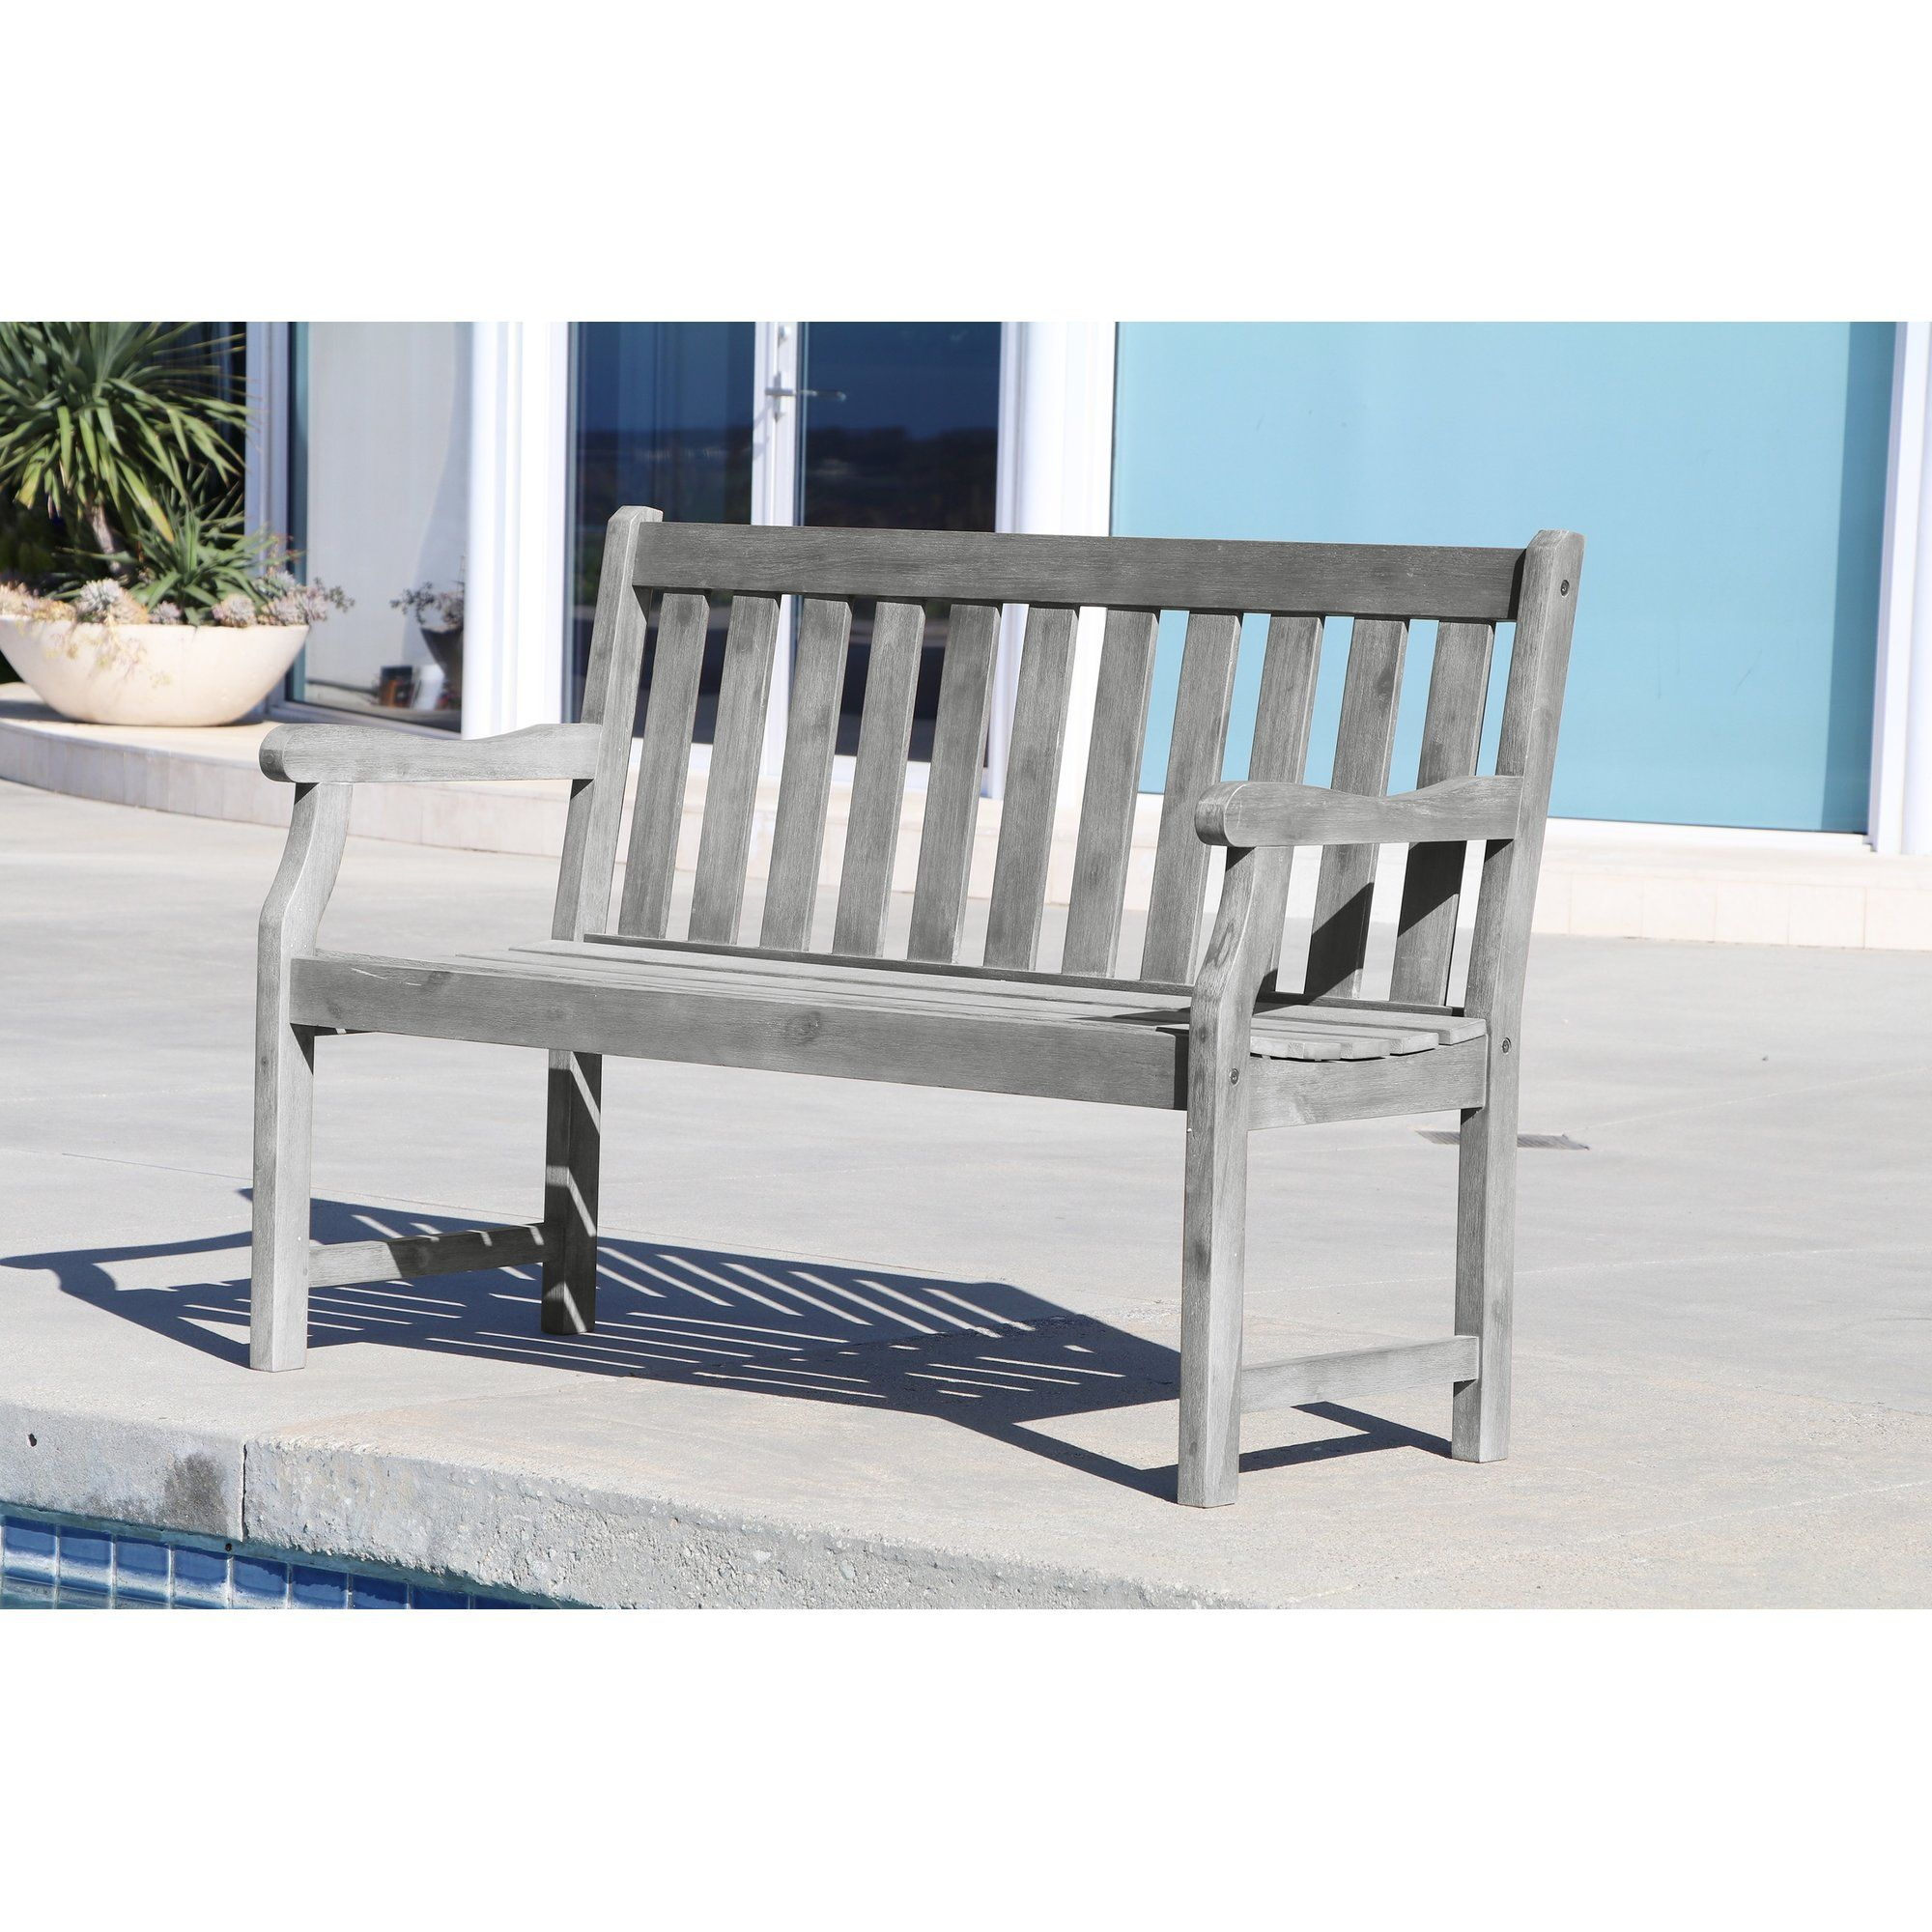 Manchester Solid Wood Garden Bench | Wooden Garden Benches Pertaining To Manchester Solid Wood Garden Benches (View 3 of 25)